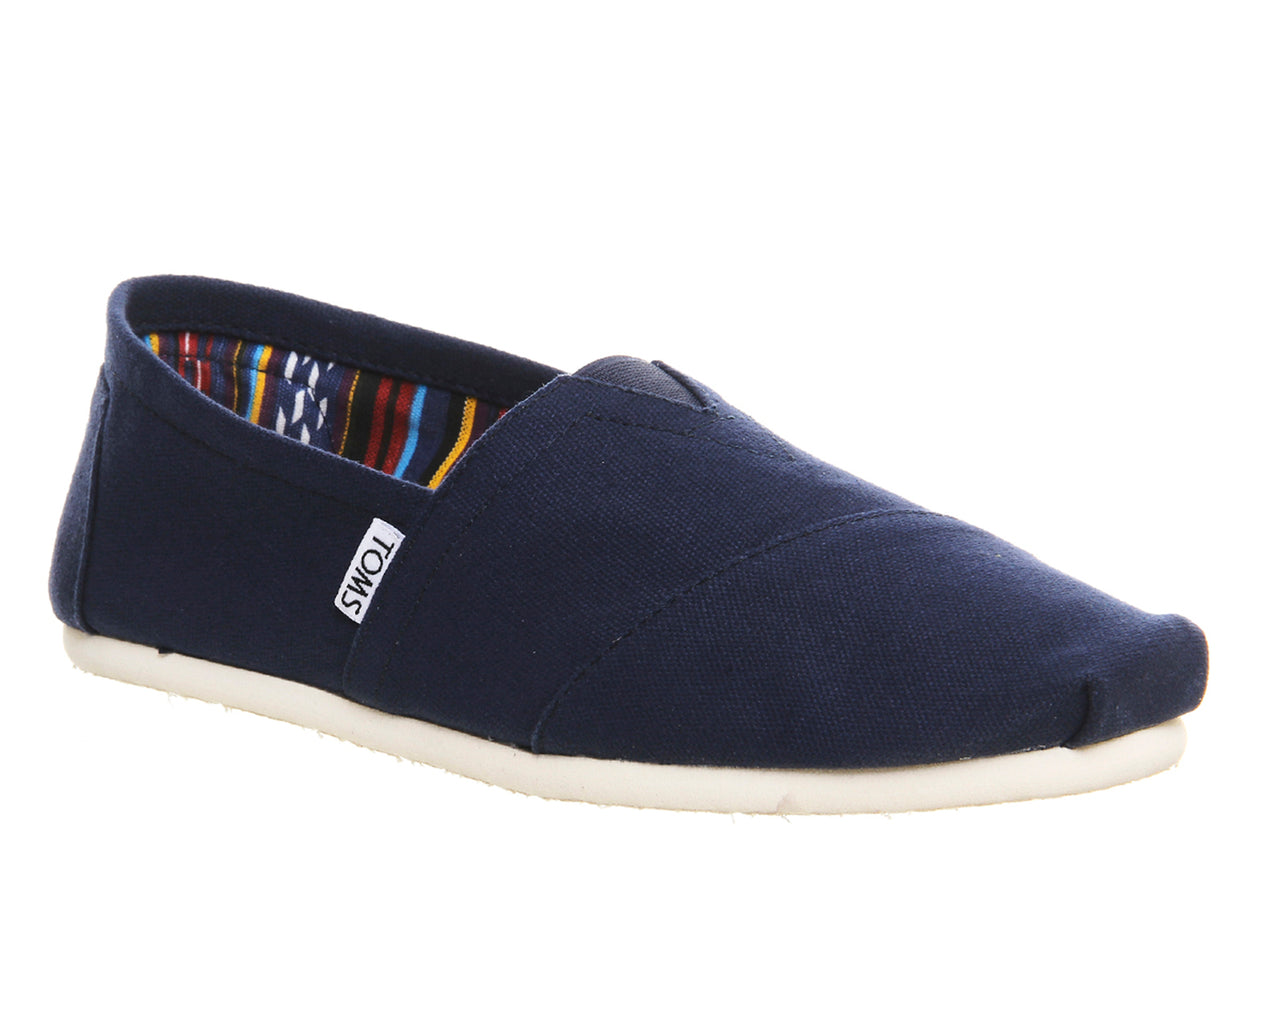 Mens Toms Classic Slip Ons Navy Canvas - OFFCUTS SHOES by OFFICE